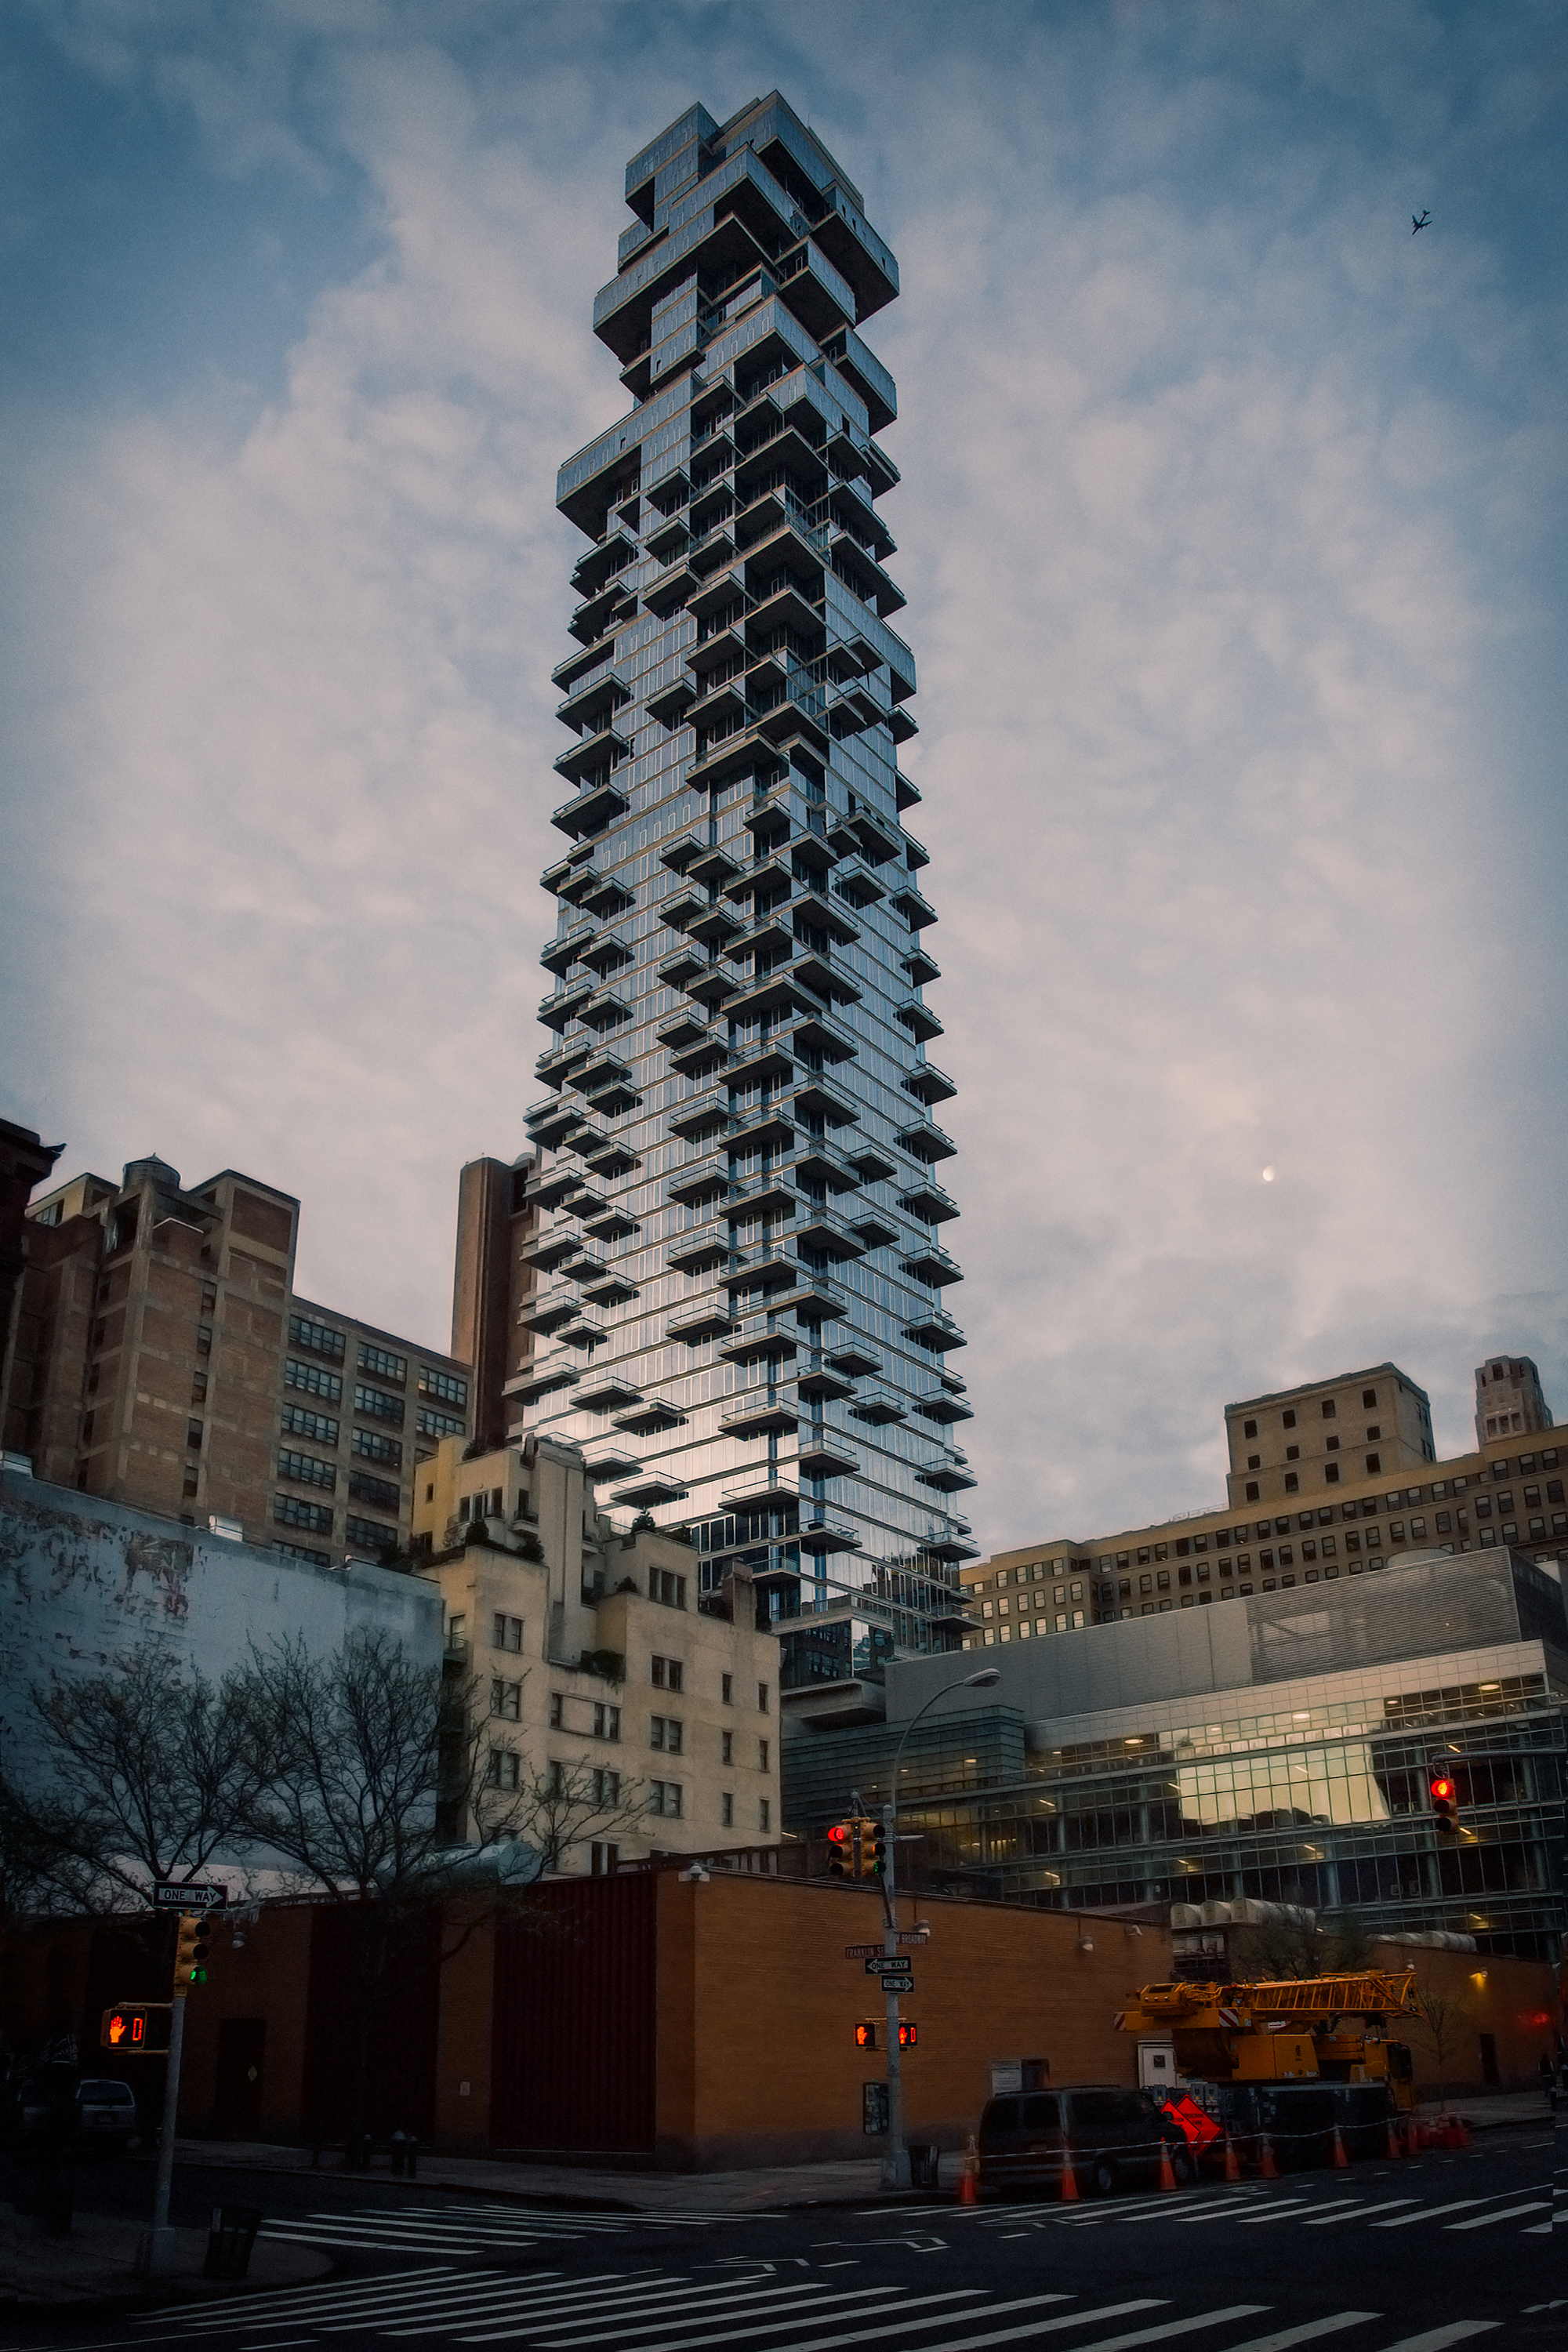 The Jenga Tower @ 56 Leonard Street